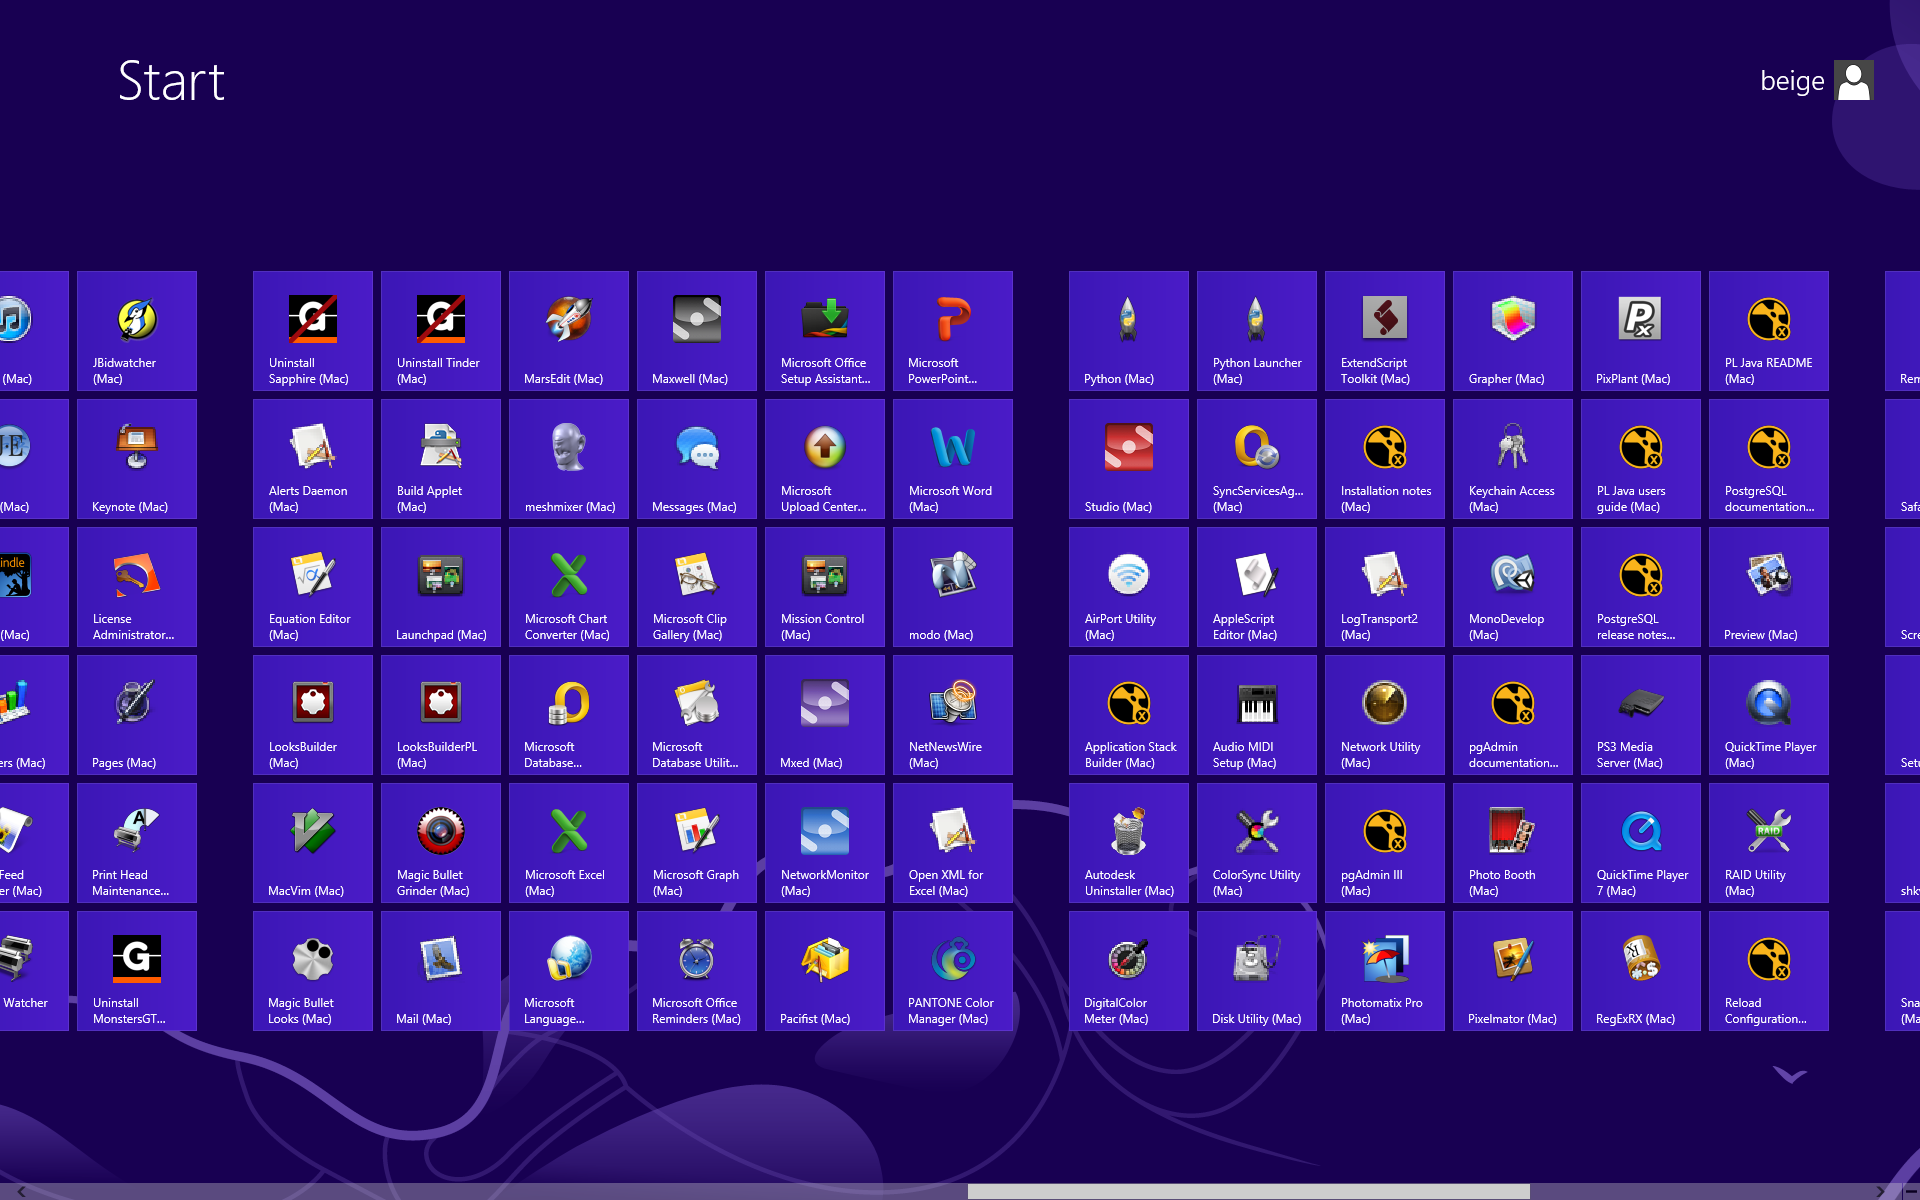 Every app between two OSes in Windows 8's start screen shown in a fluid mix of recent-usage and non-alphabetical order within a grid layout. This is the worst launcher ever.